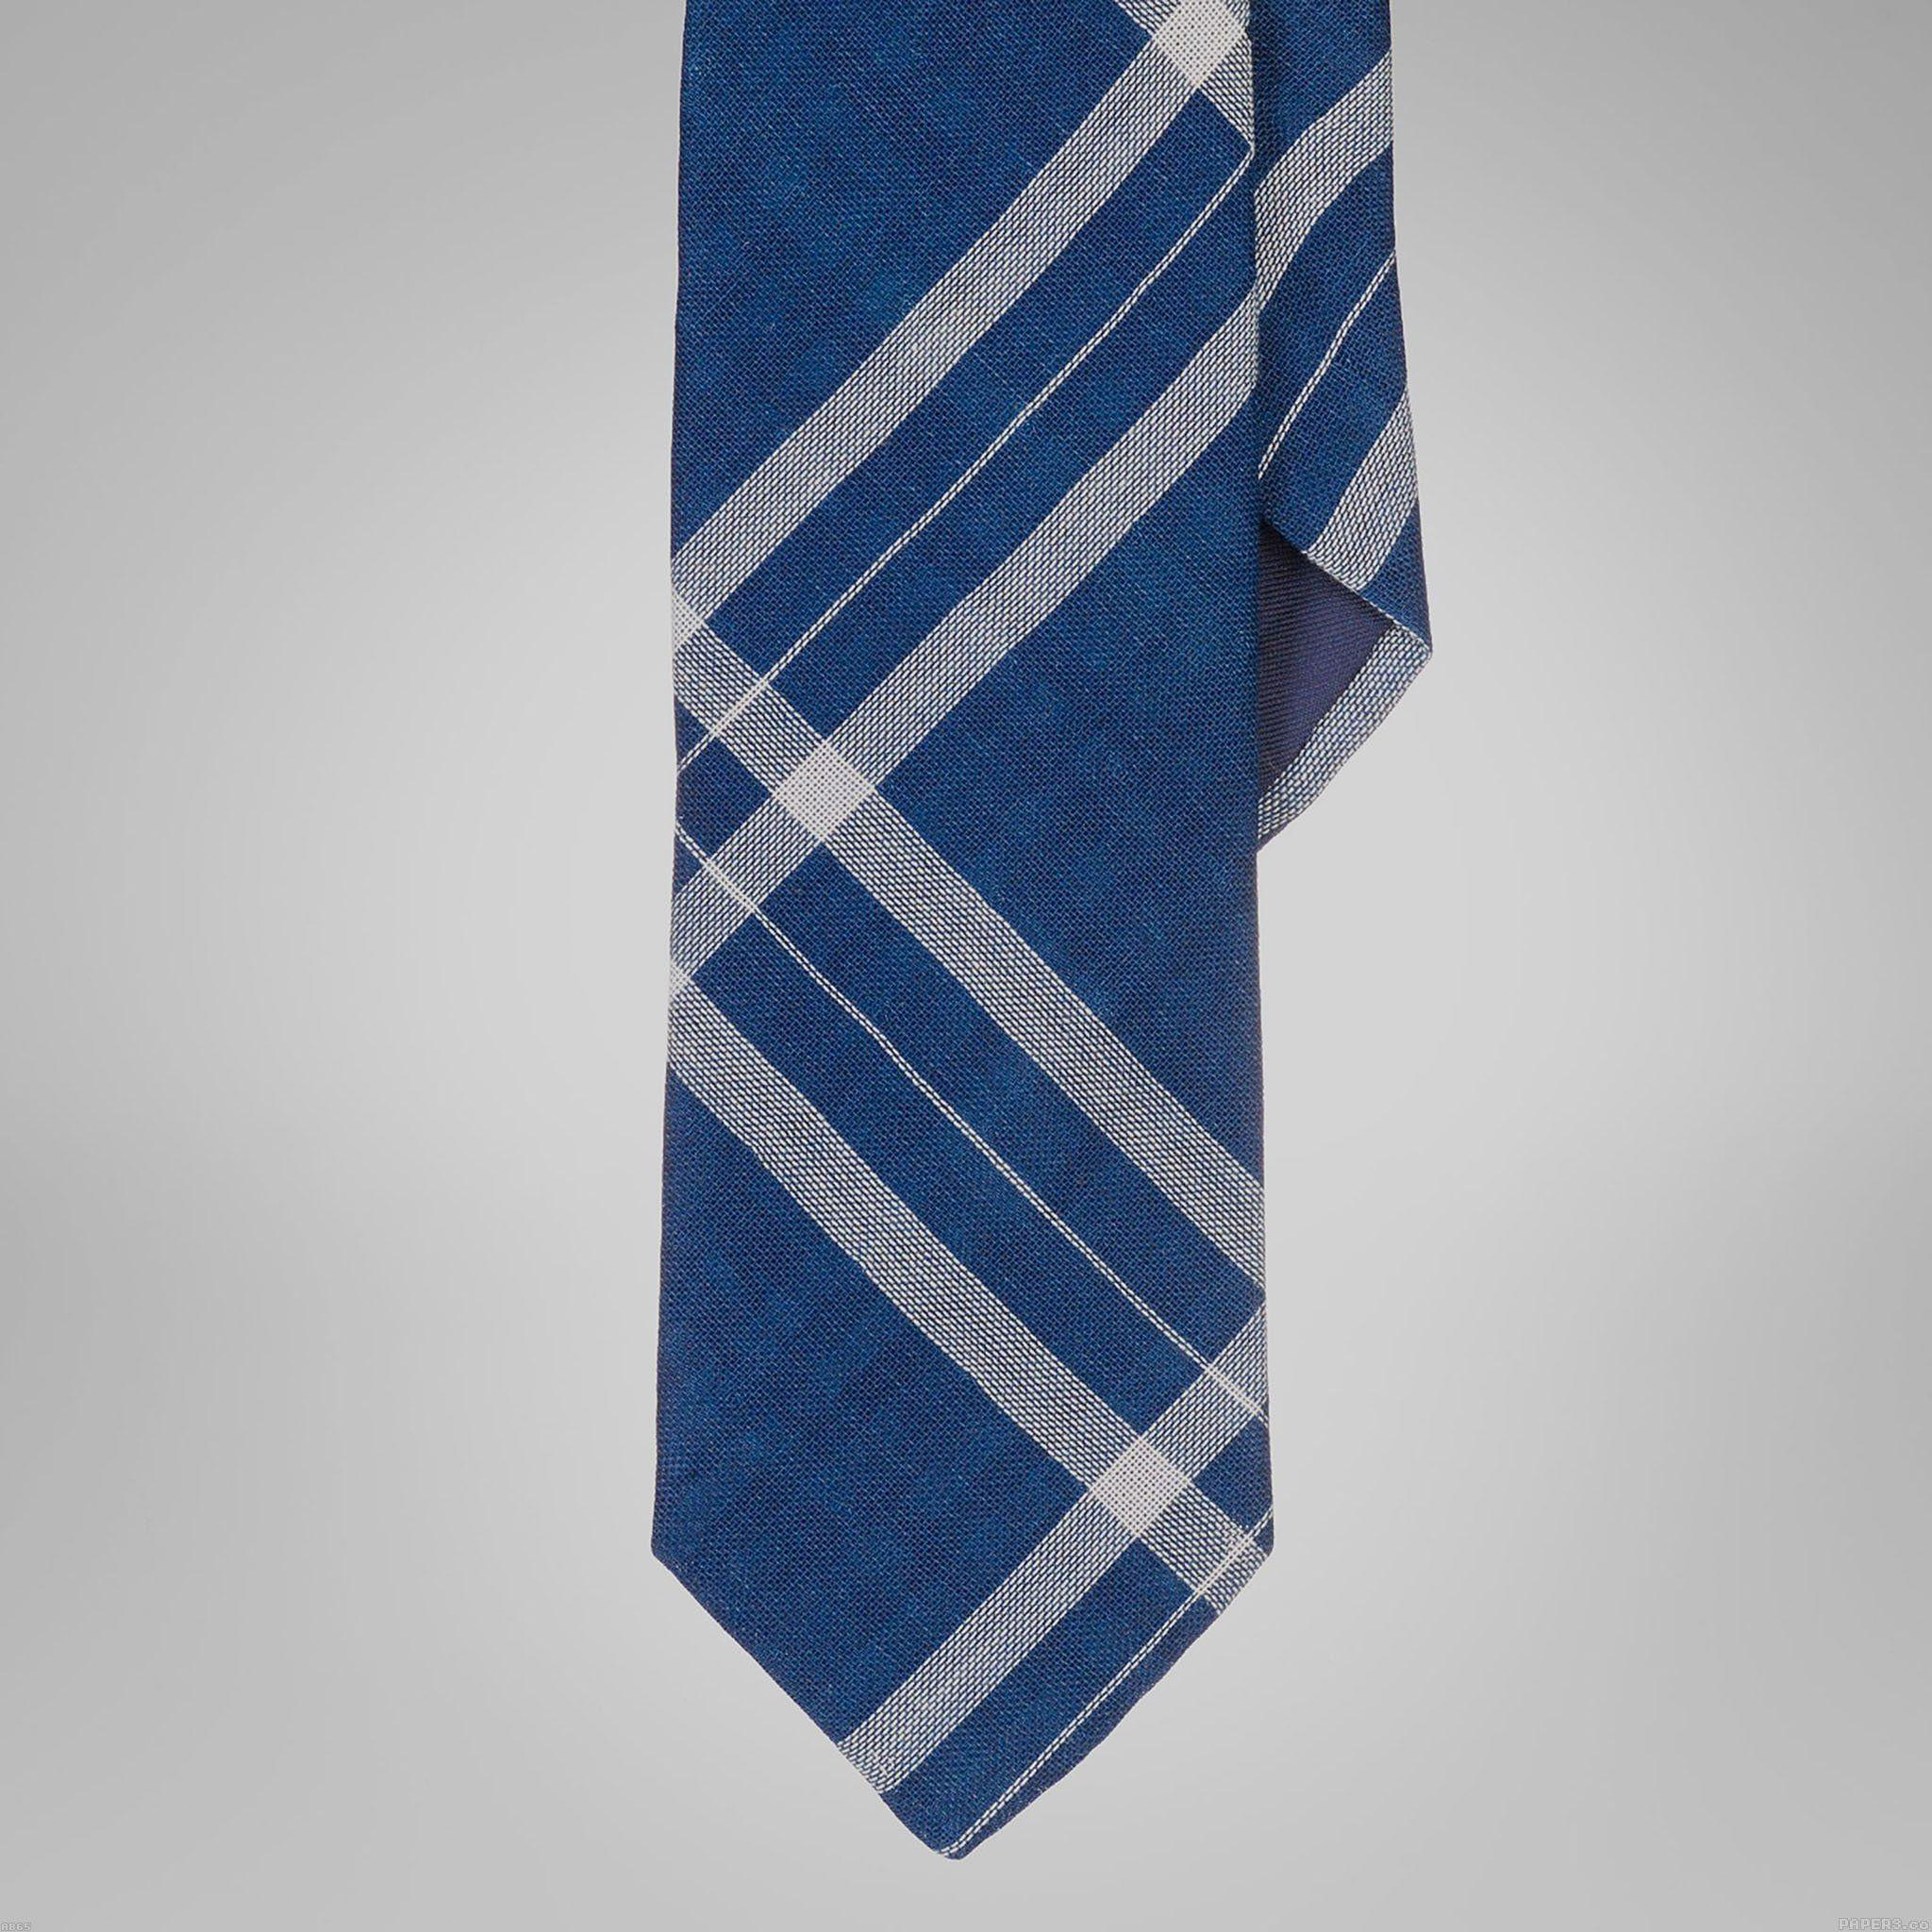 ab65-wallpaper-polo-ralph-lauren-tie - Papers.co